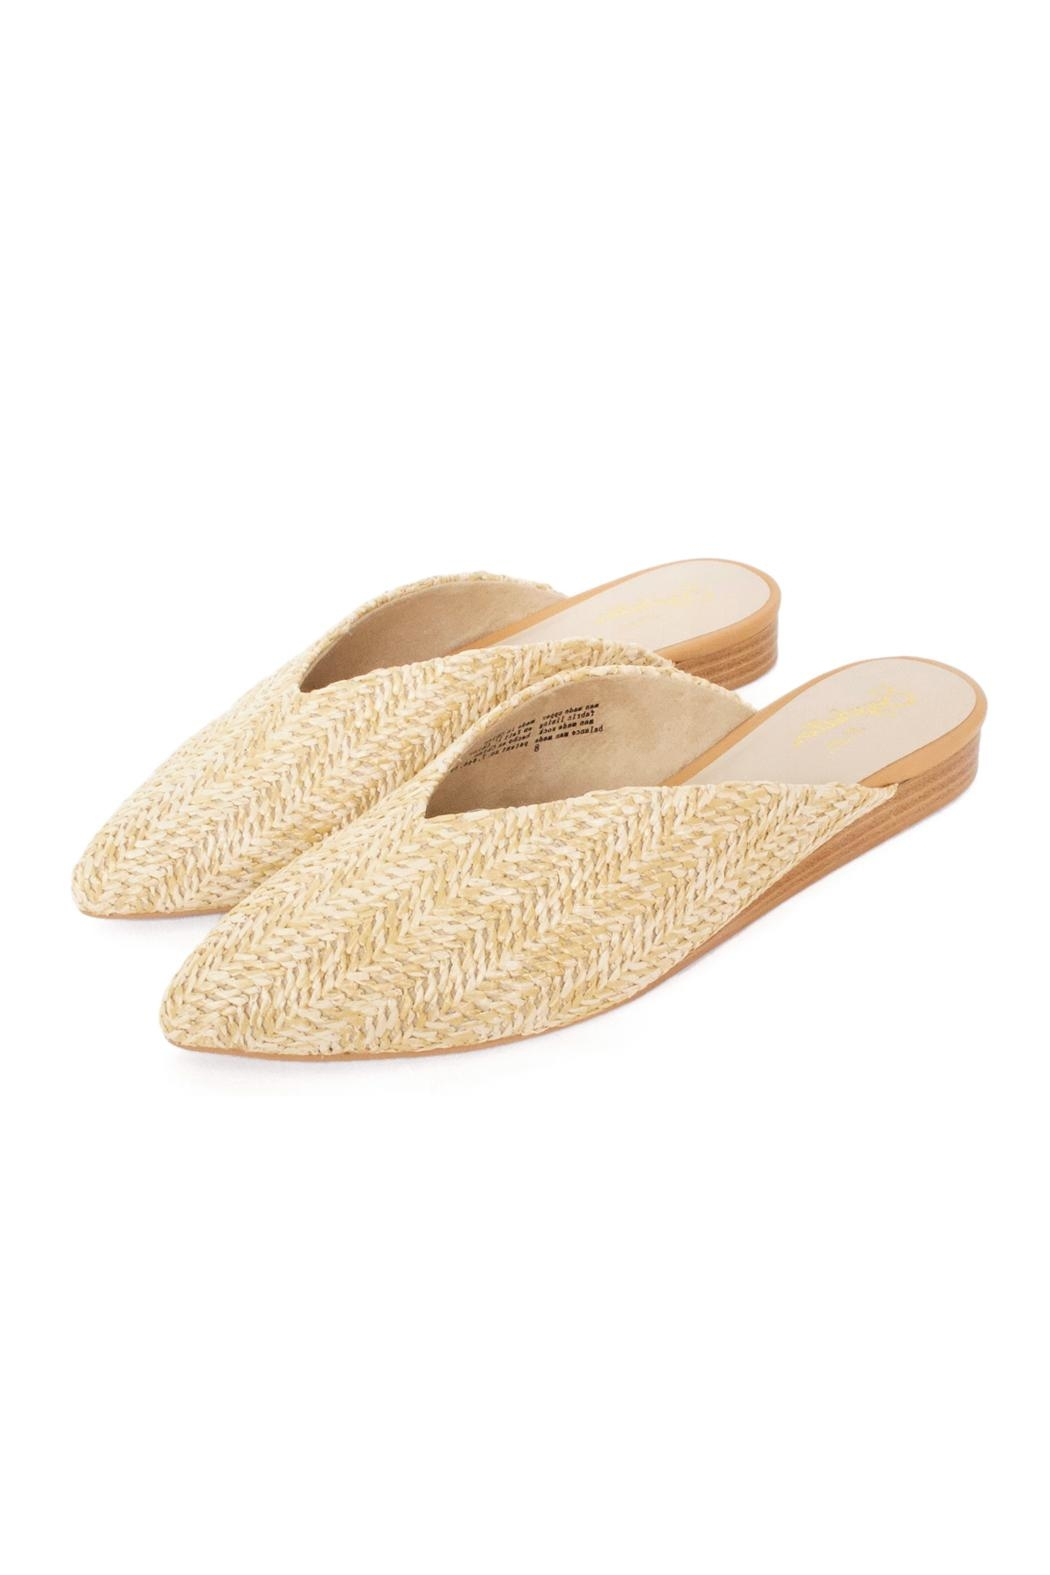 Seychelles Straw Flat Mules - Front Full Image